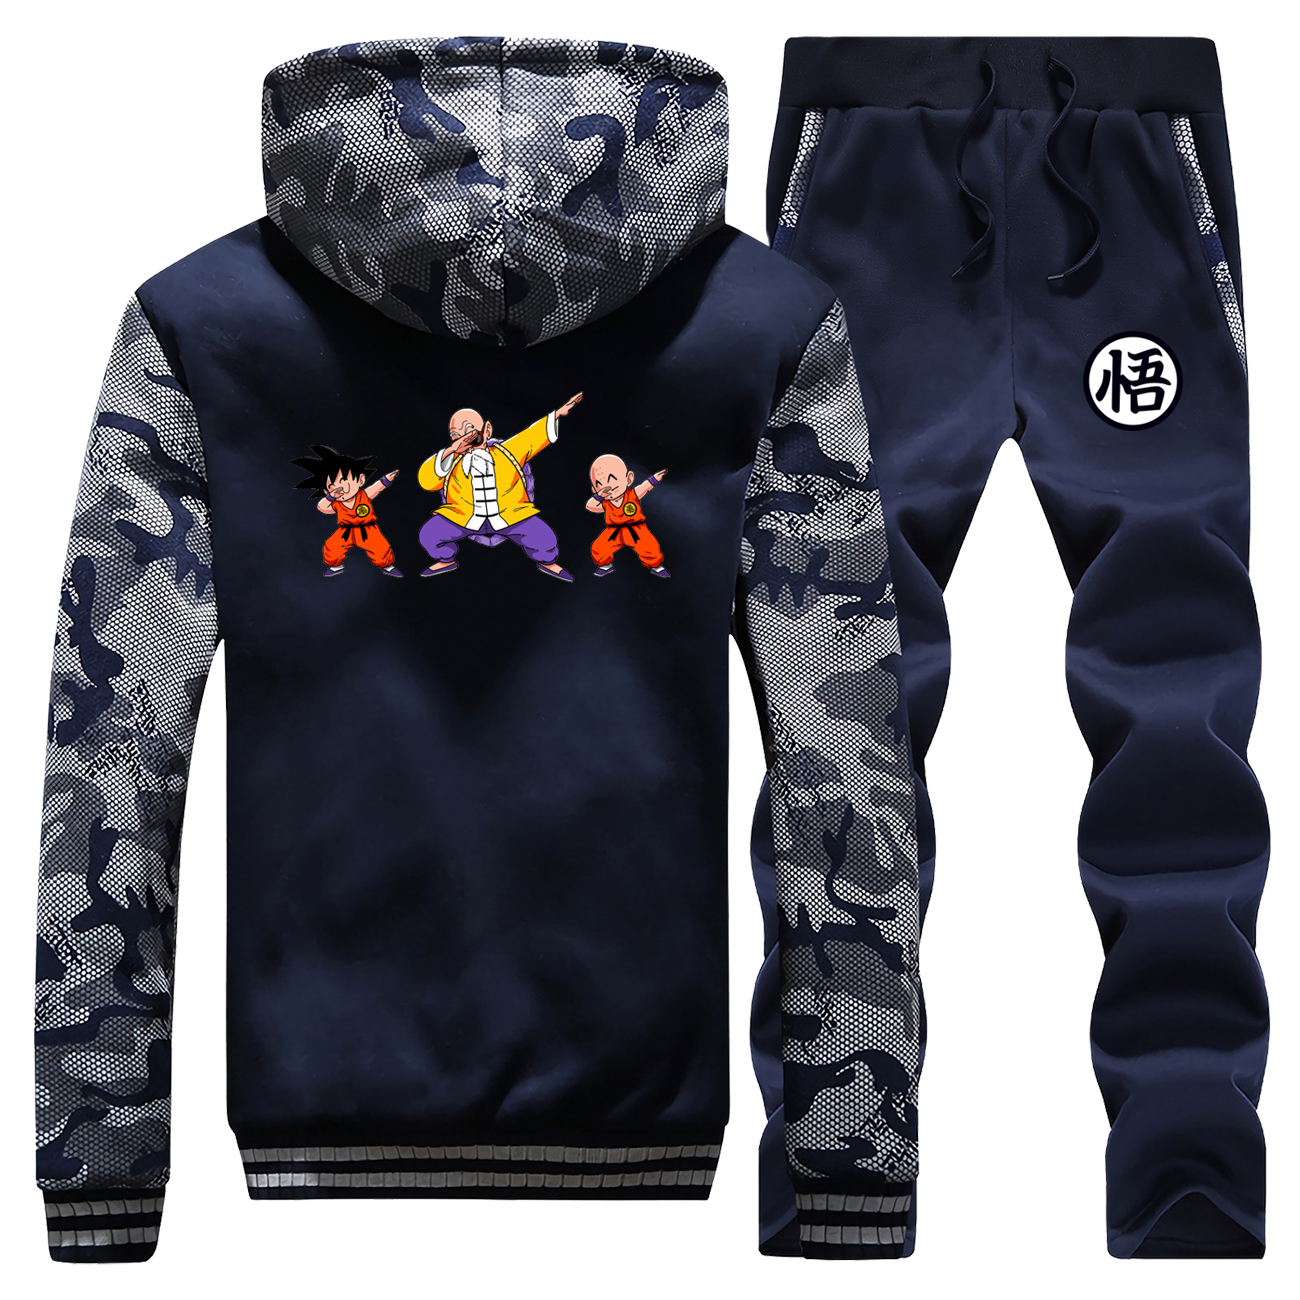 Dabbing Dragon Ball Hoodies Pants Set Men Master Roshi Gohan Tracksuit Coat Track Suit Winter Thicken Jacket Camo 2 Piece Sets